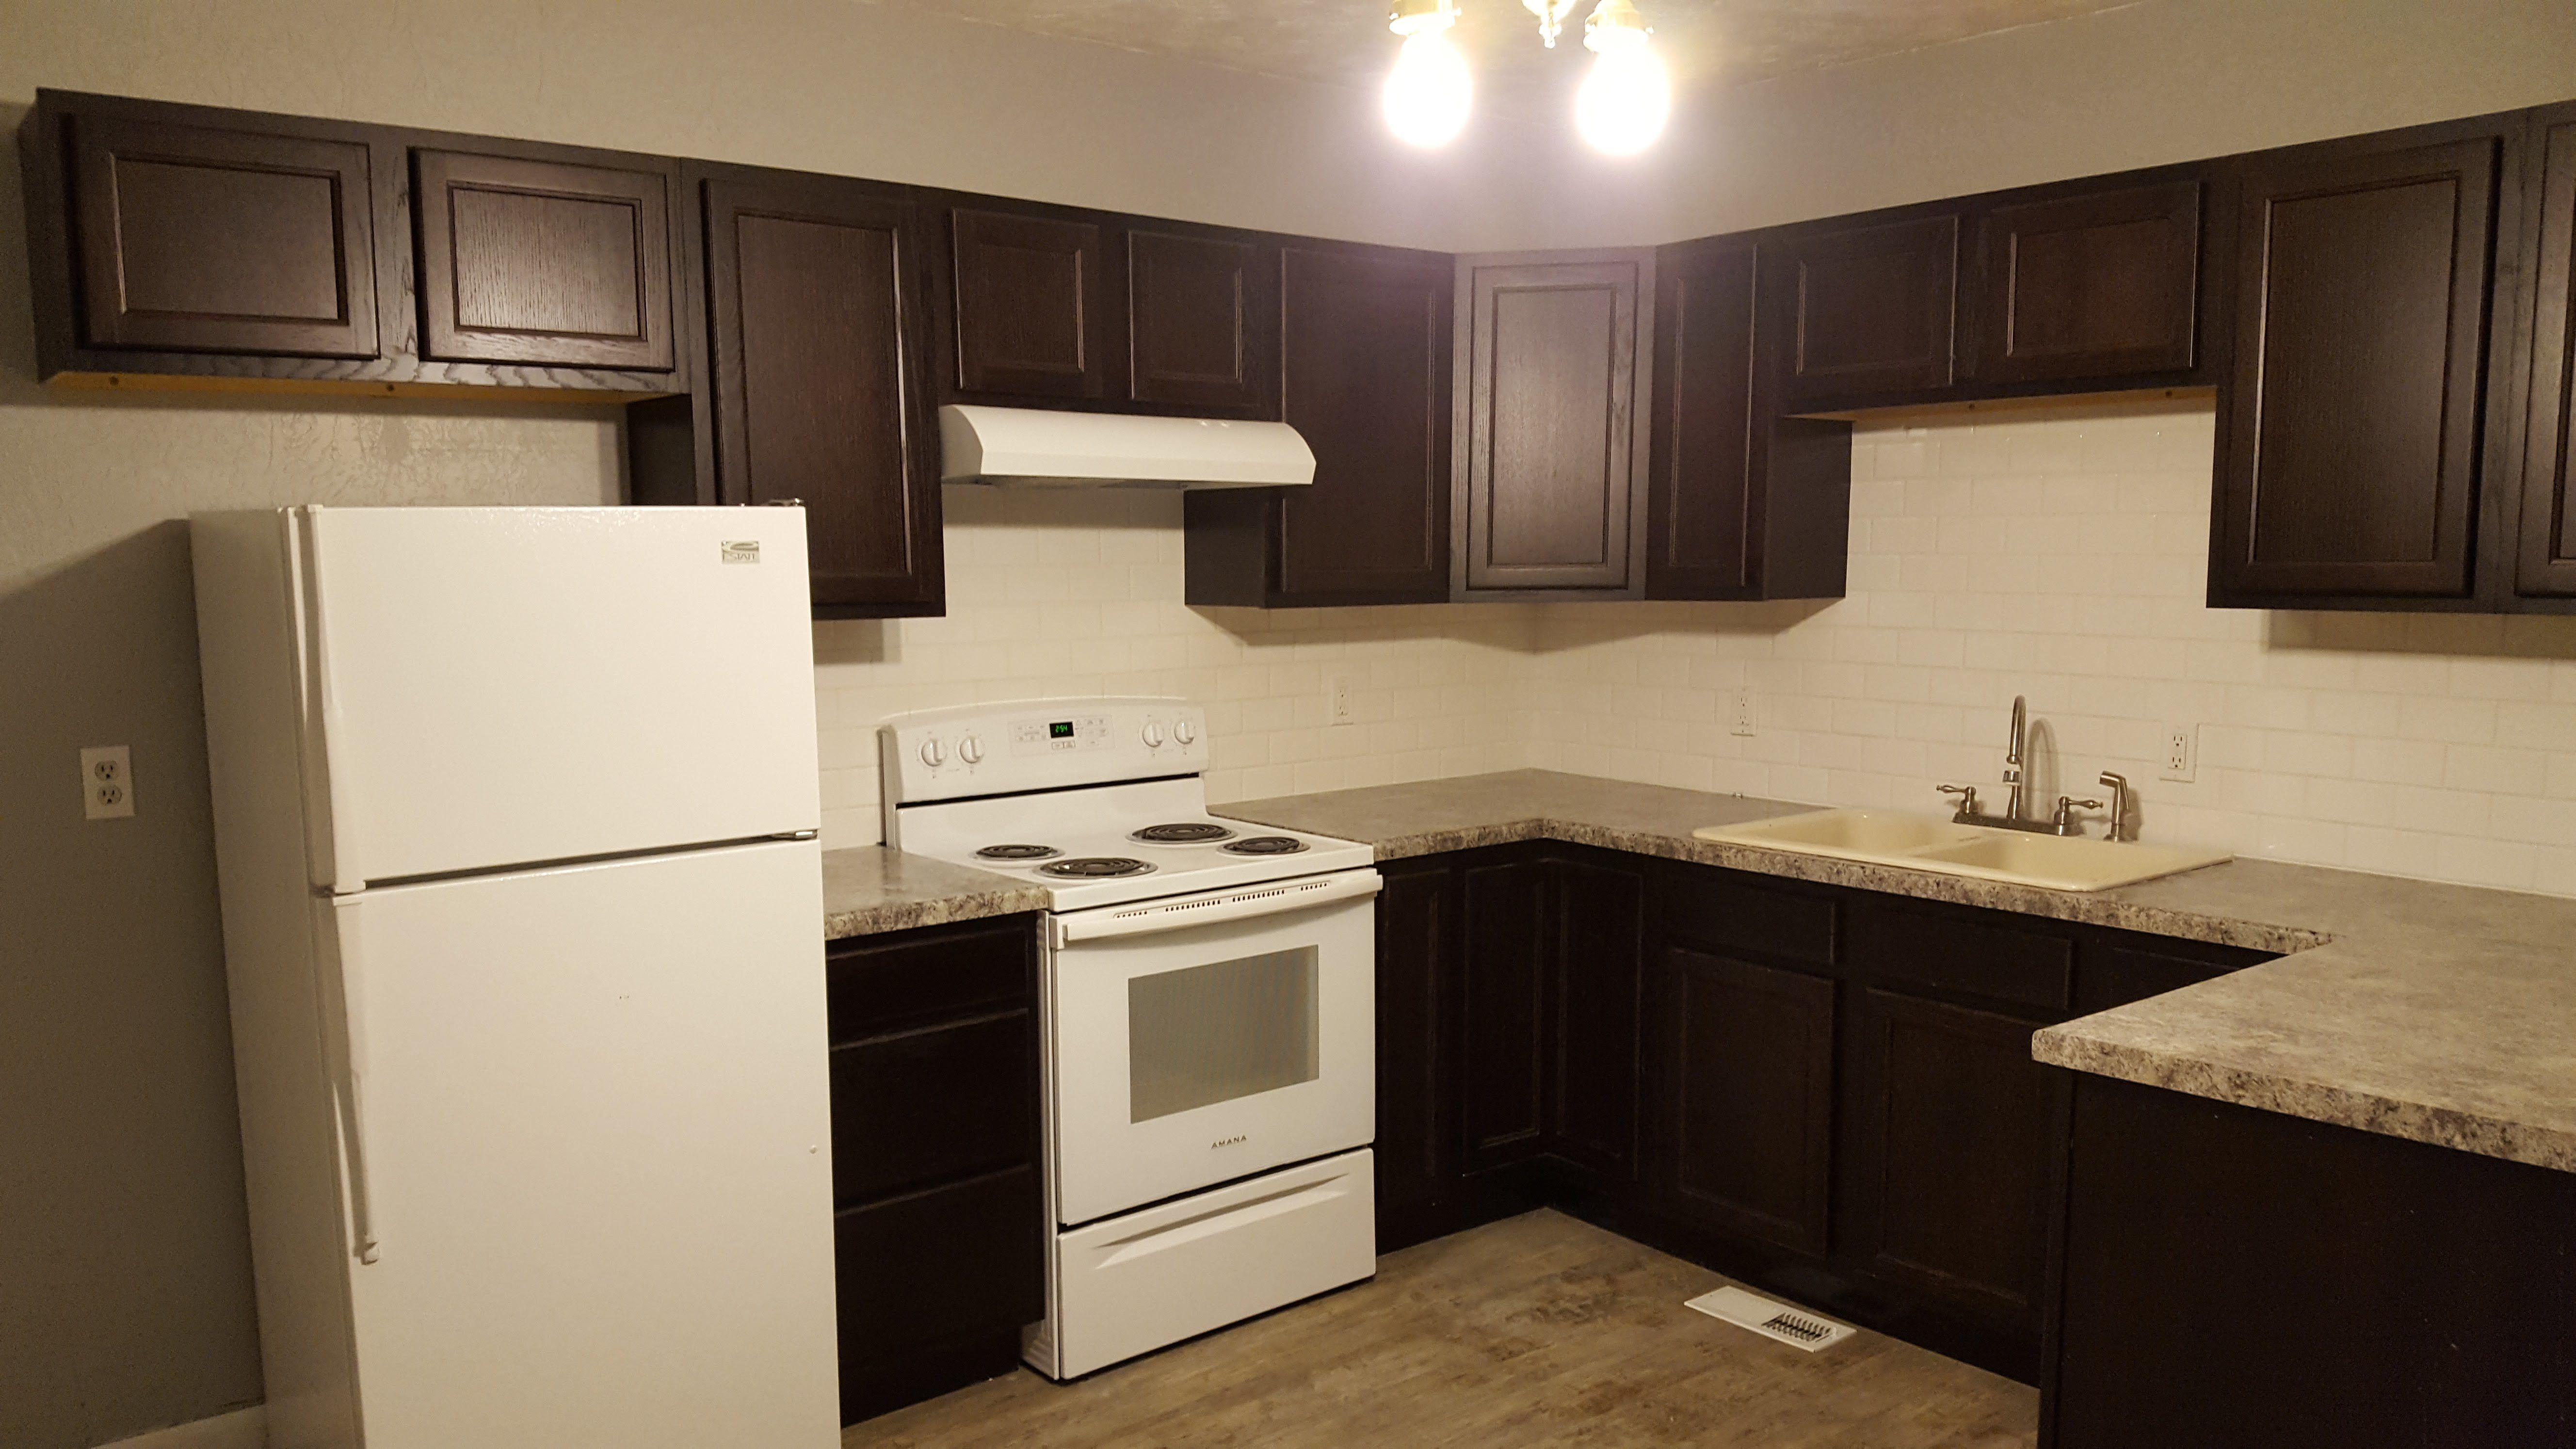 Spacious 2 bed 1 bath newly remodeled duplex for Rent $675/month image 1